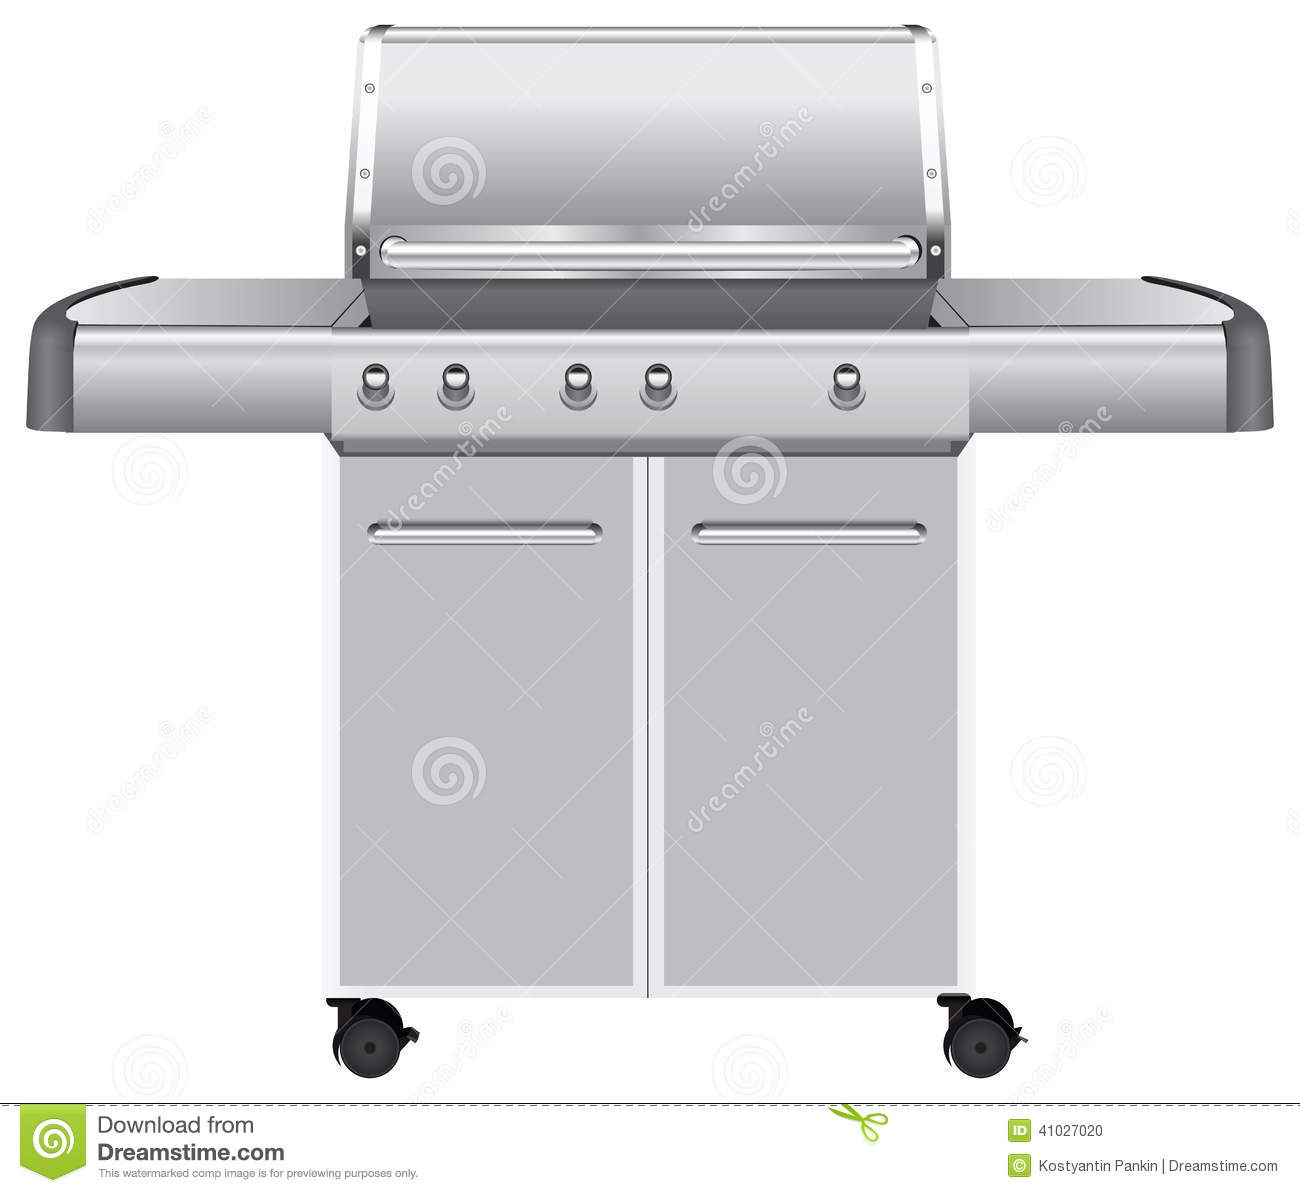 Weber Genesis Grill Center Stainless Steel Cabinets